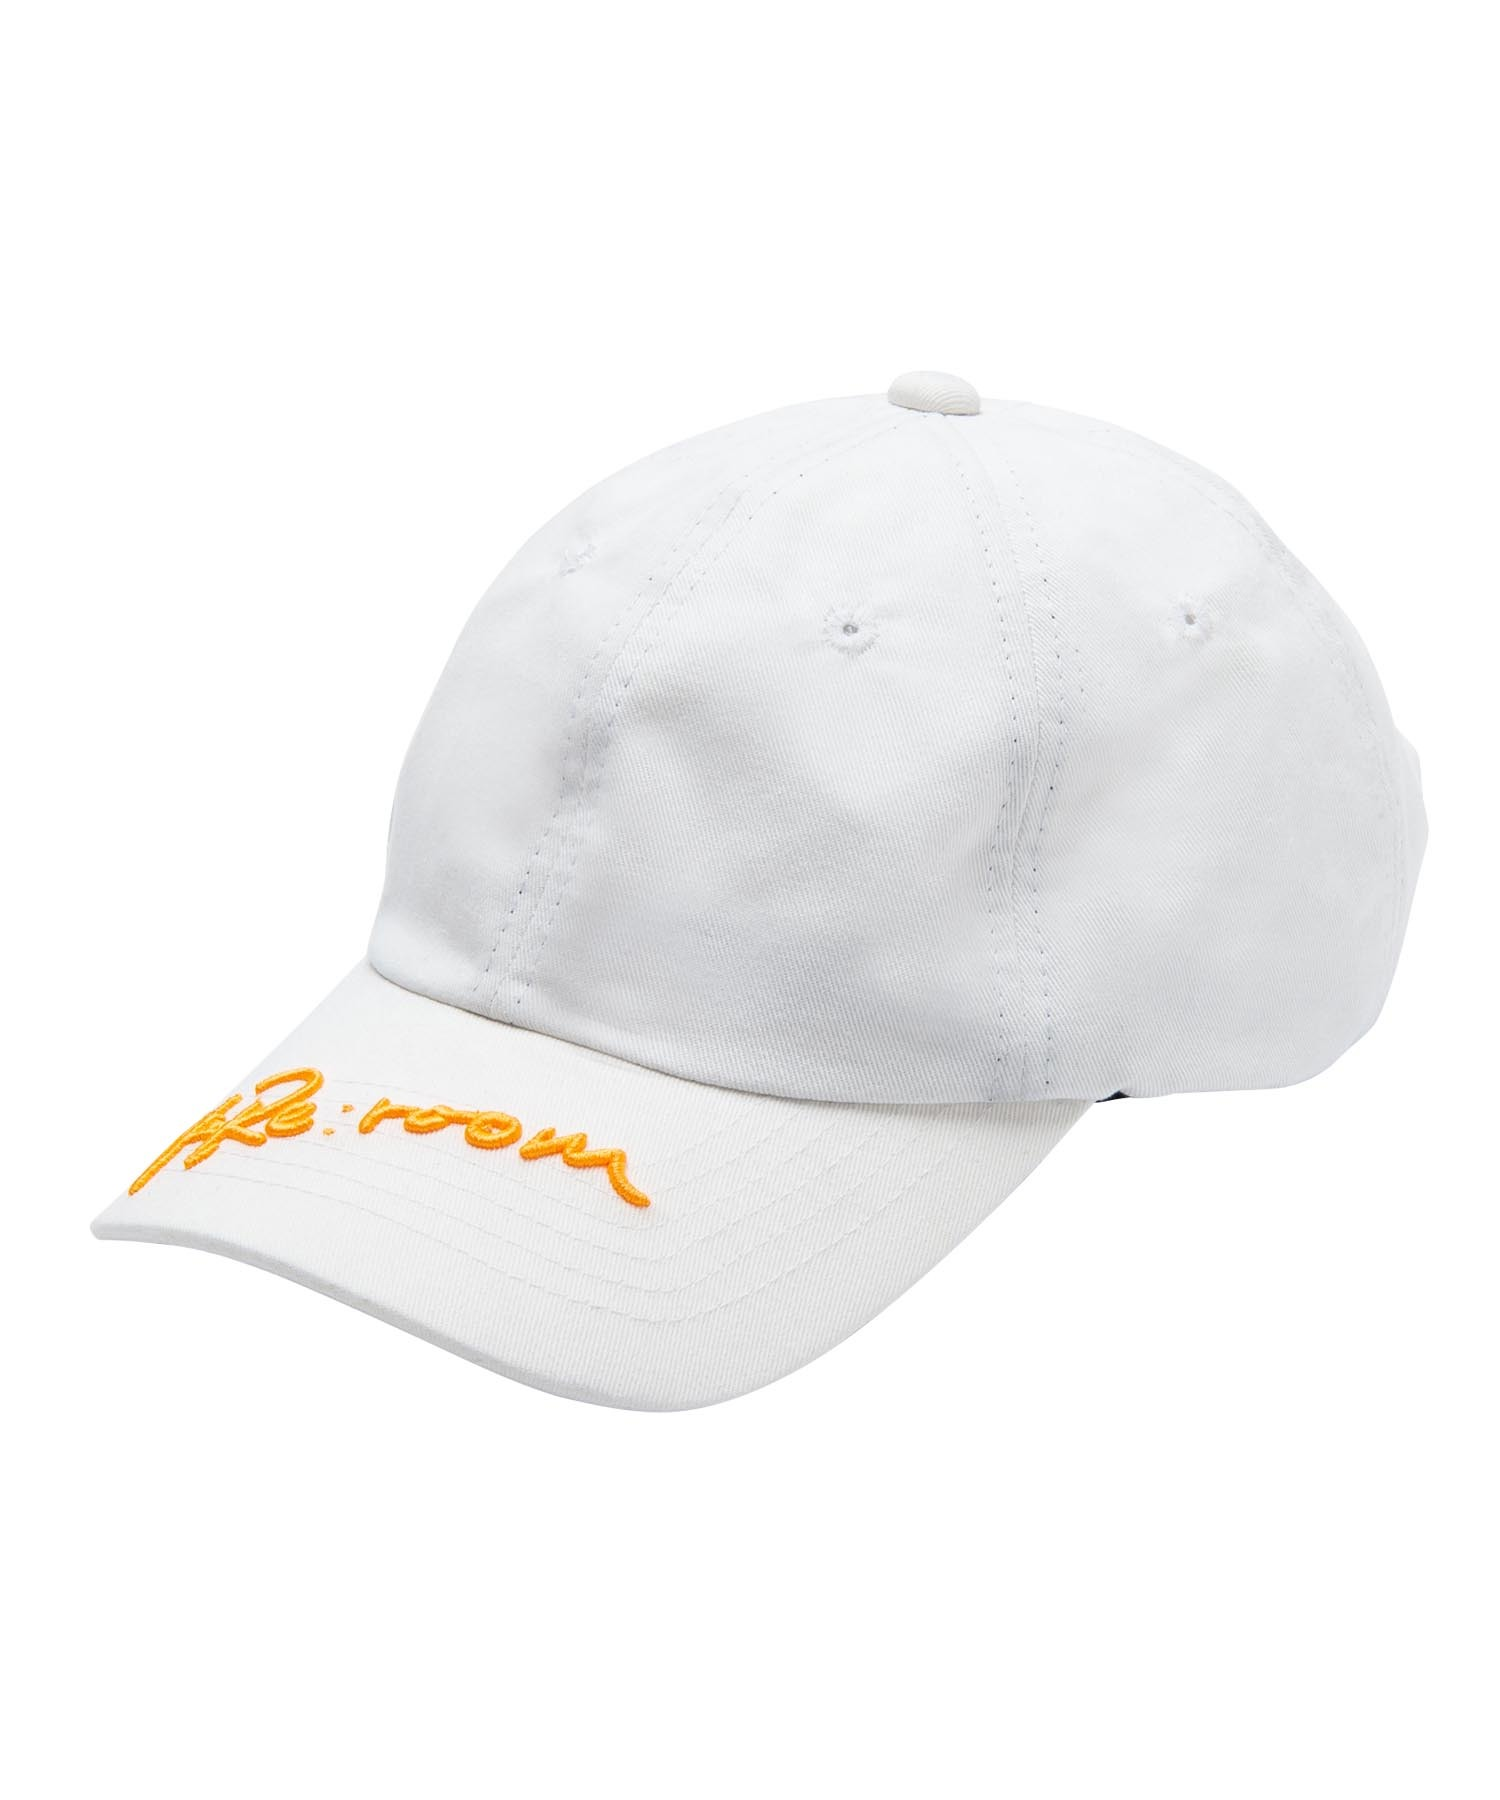 EMBROIDERY VISOR 3D LOGO TWILL CAP[REH090]